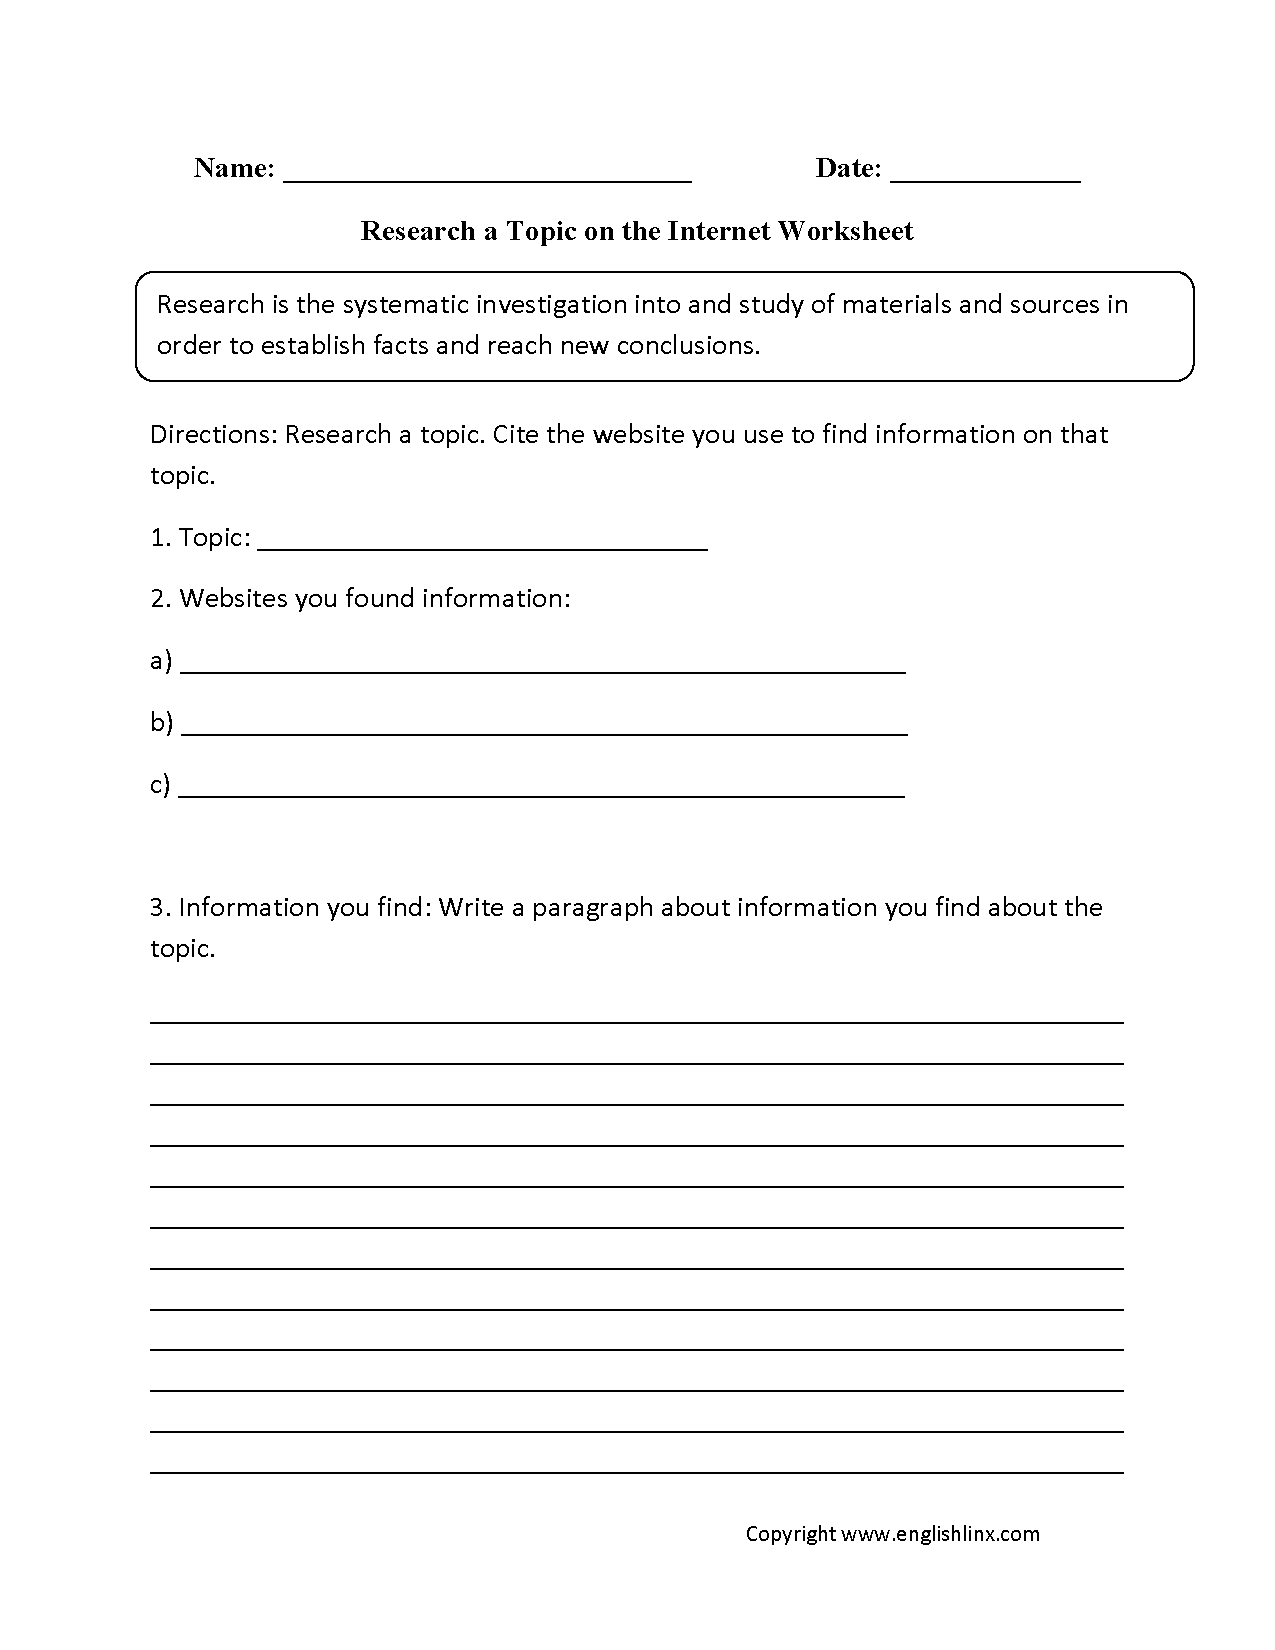 Aldiablosus  Seductive Englishlinxcom  Research Worksheets With Exquisite On The Internet Worksheet With Cool Be The Teacher Worksheets Also Worksheet Conjunctions In Addition Math Worksheets Grade  Fractions And Au Phonics Worksheets As Well As Free Reading Comprehension Worksheets For First Grade Additionally Free Esl Worksheets For Elementary From Englishlinxcom With Aldiablosus  Exquisite Englishlinxcom  Research Worksheets With Cool On The Internet Worksheet And Seductive Be The Teacher Worksheets Also Worksheet Conjunctions In Addition Math Worksheets Grade  Fractions From Englishlinxcom